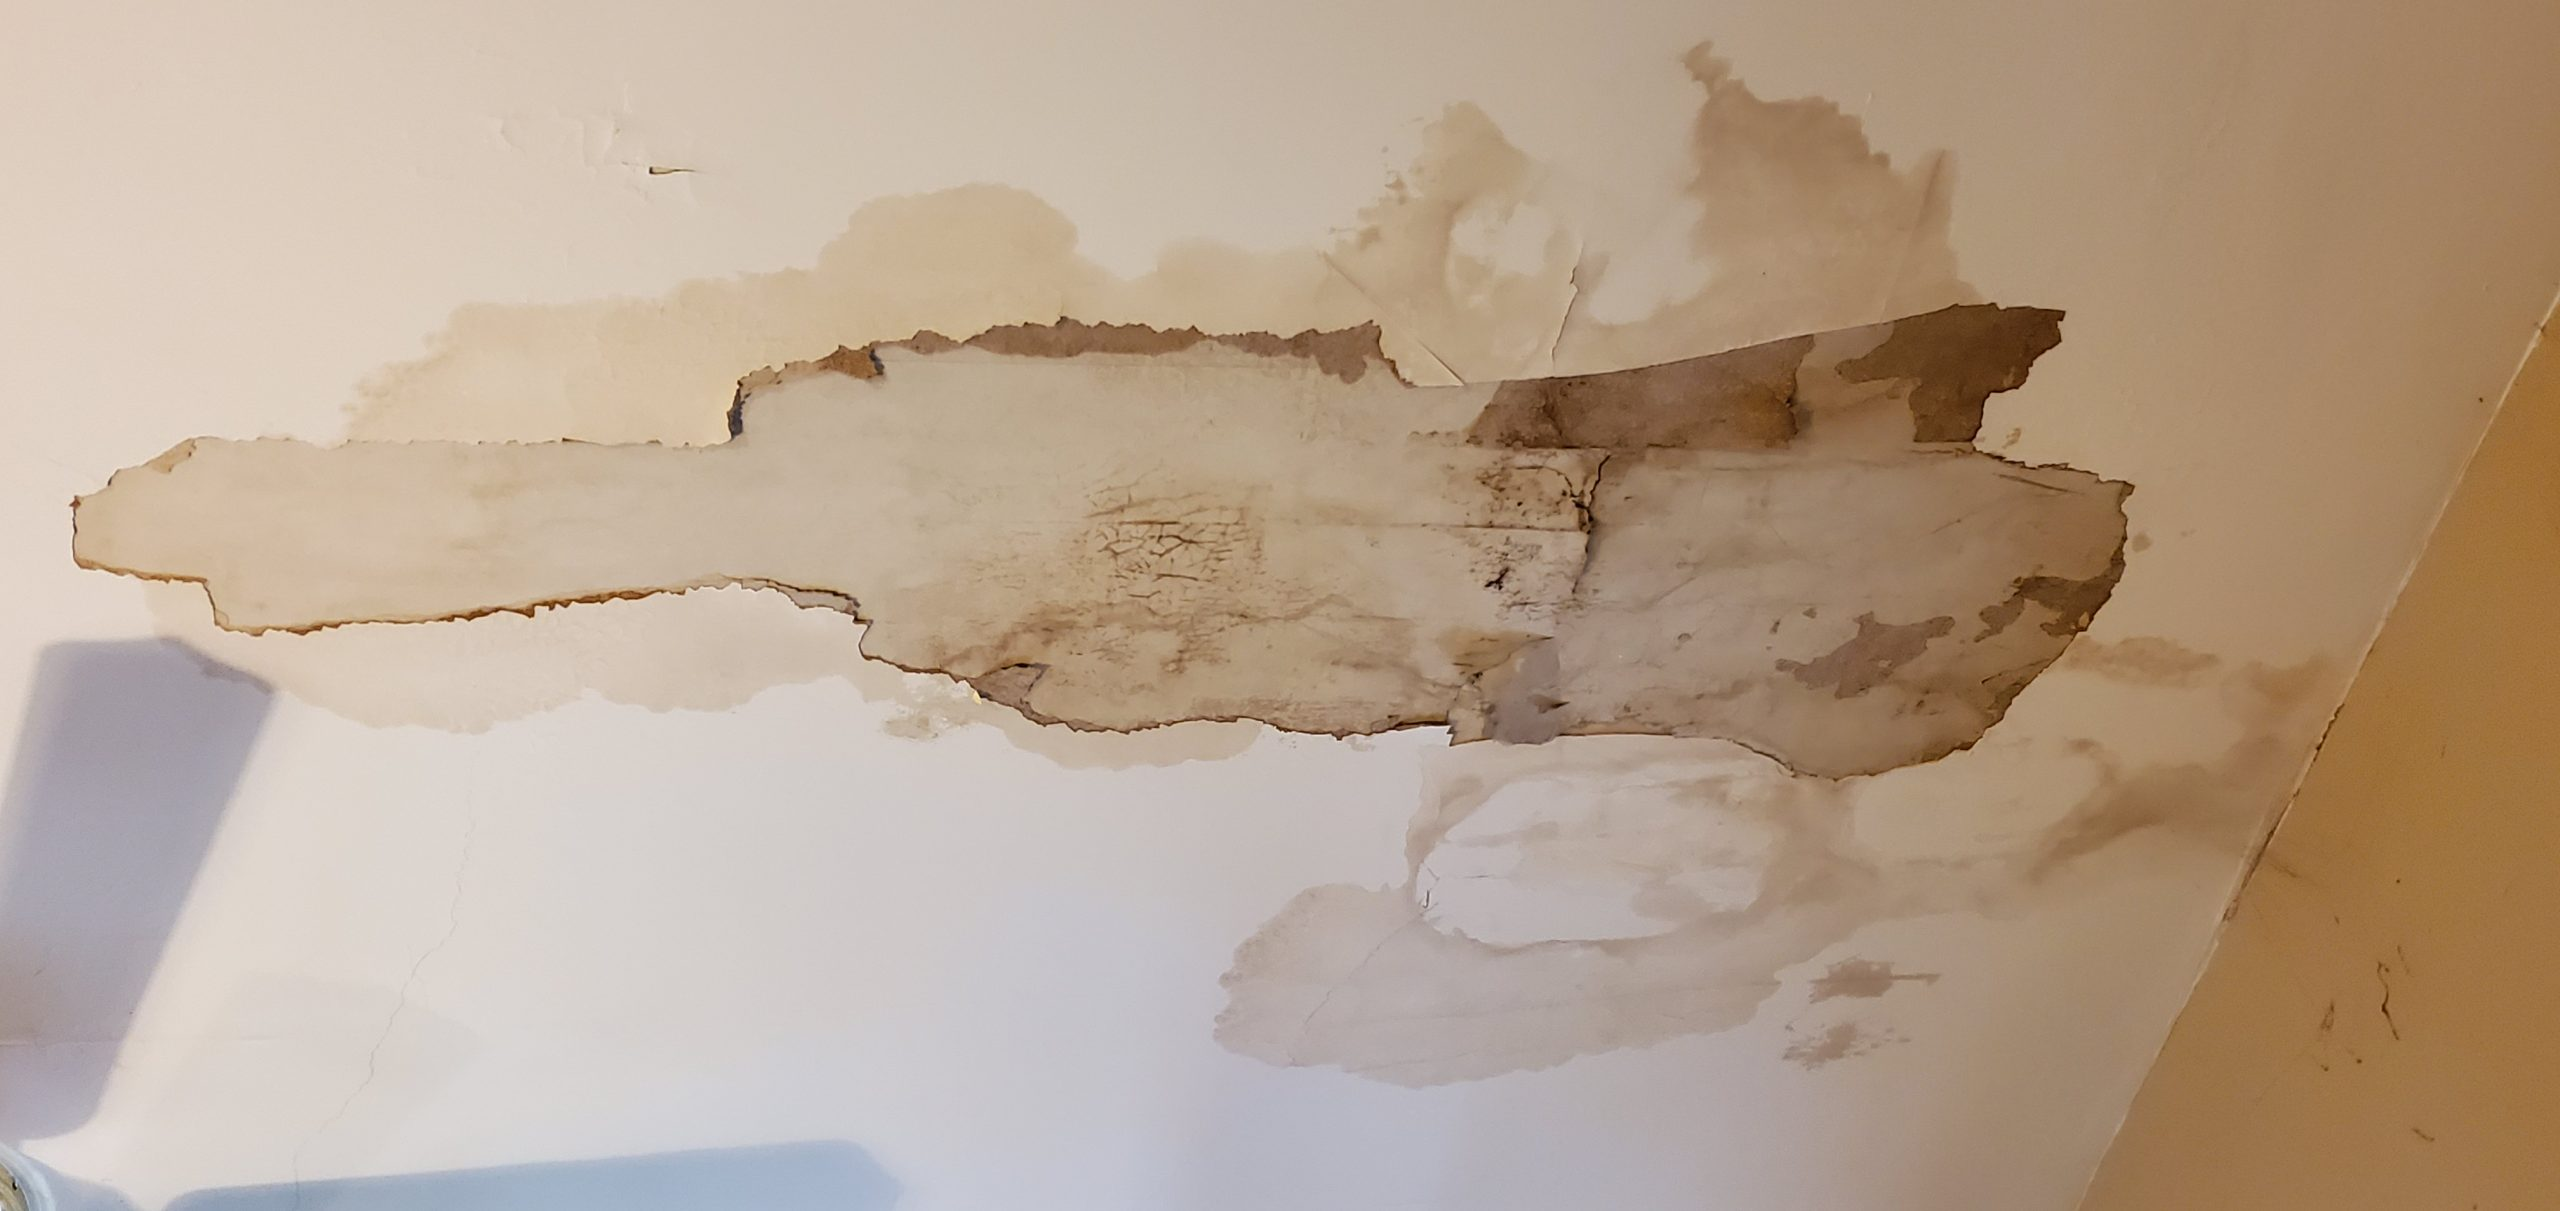 this is a picture of ceiling stain and drywall that is falling and cracking in knoxville tn